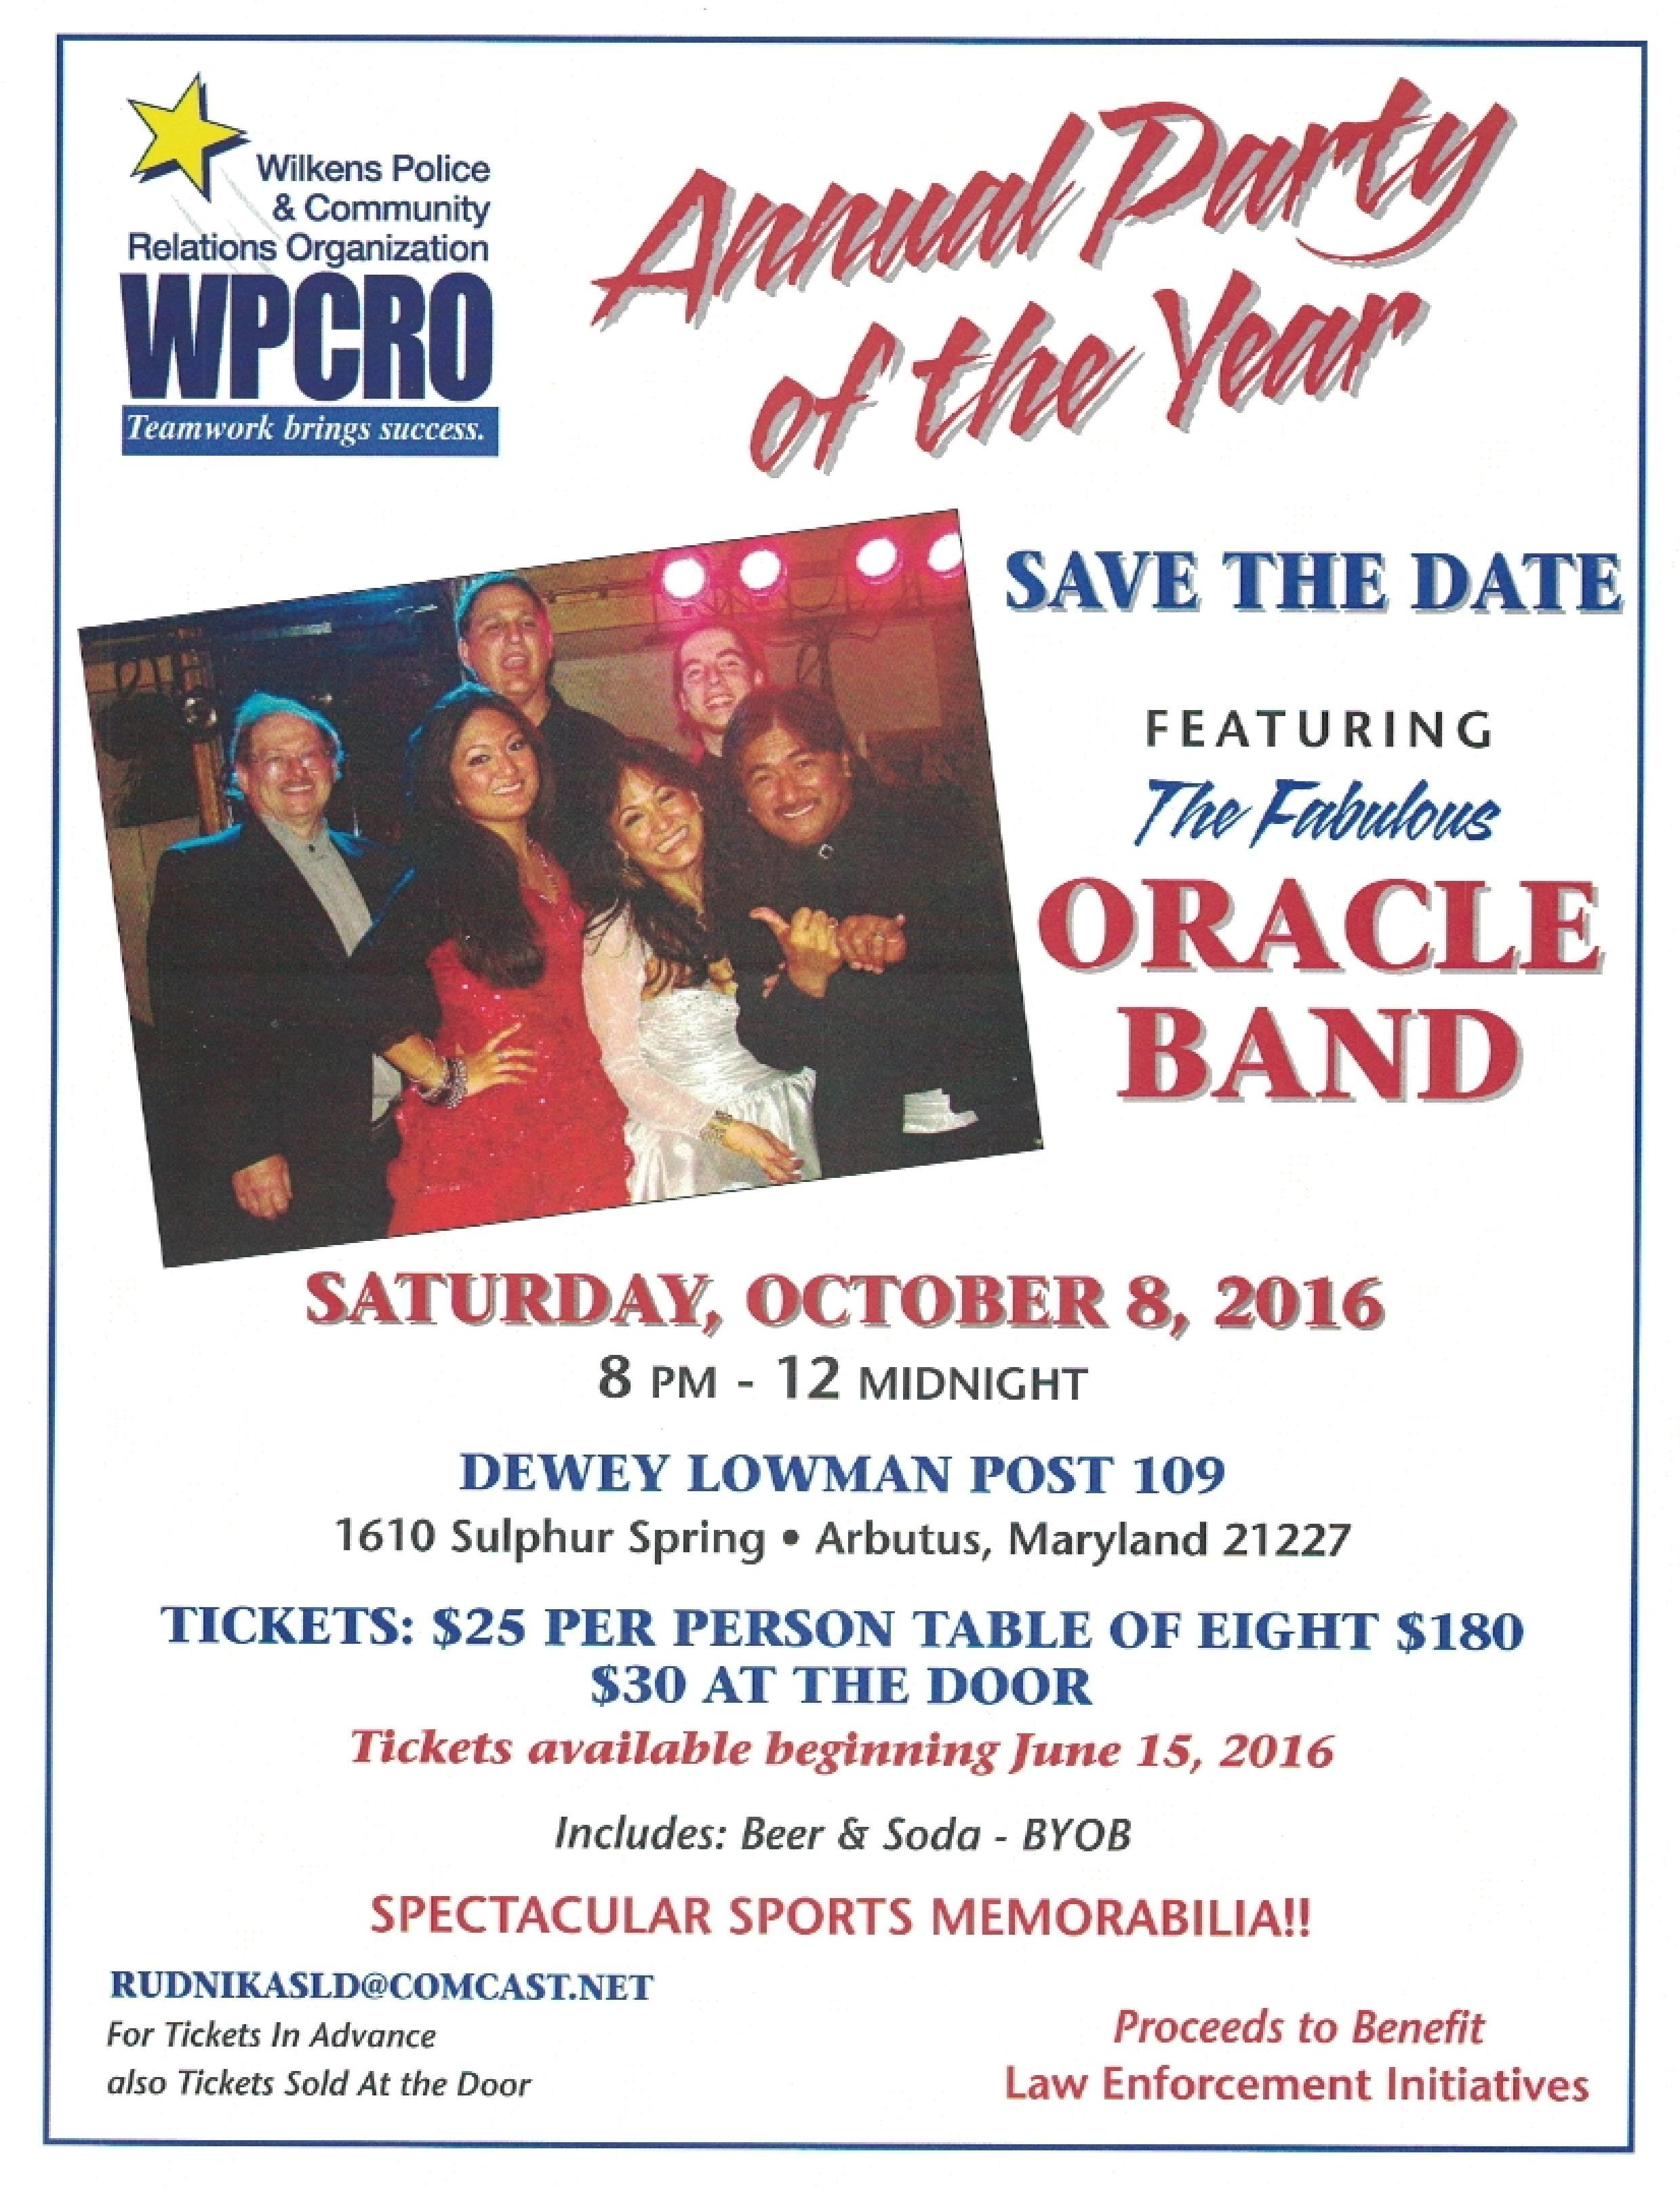 WPCRO Annual Party of the Year @ Dewey Lowman Post 109 | Arbutus | Maryland | United States